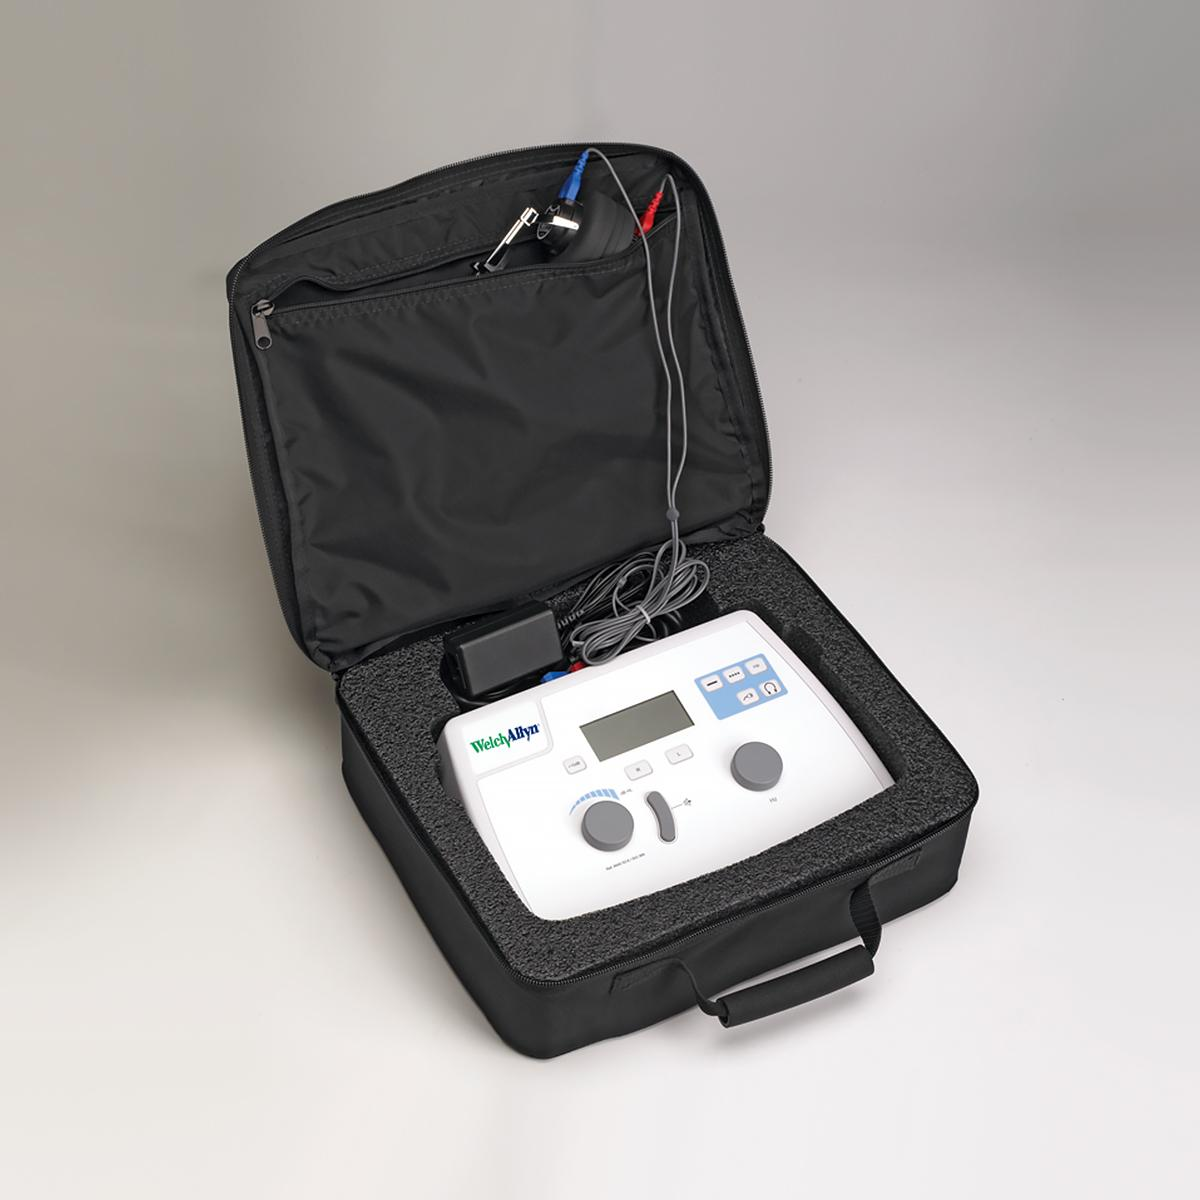 The Welch Allyn AM 282 portable audiometer in its black carry case, which features zippered pockets for cord storage.